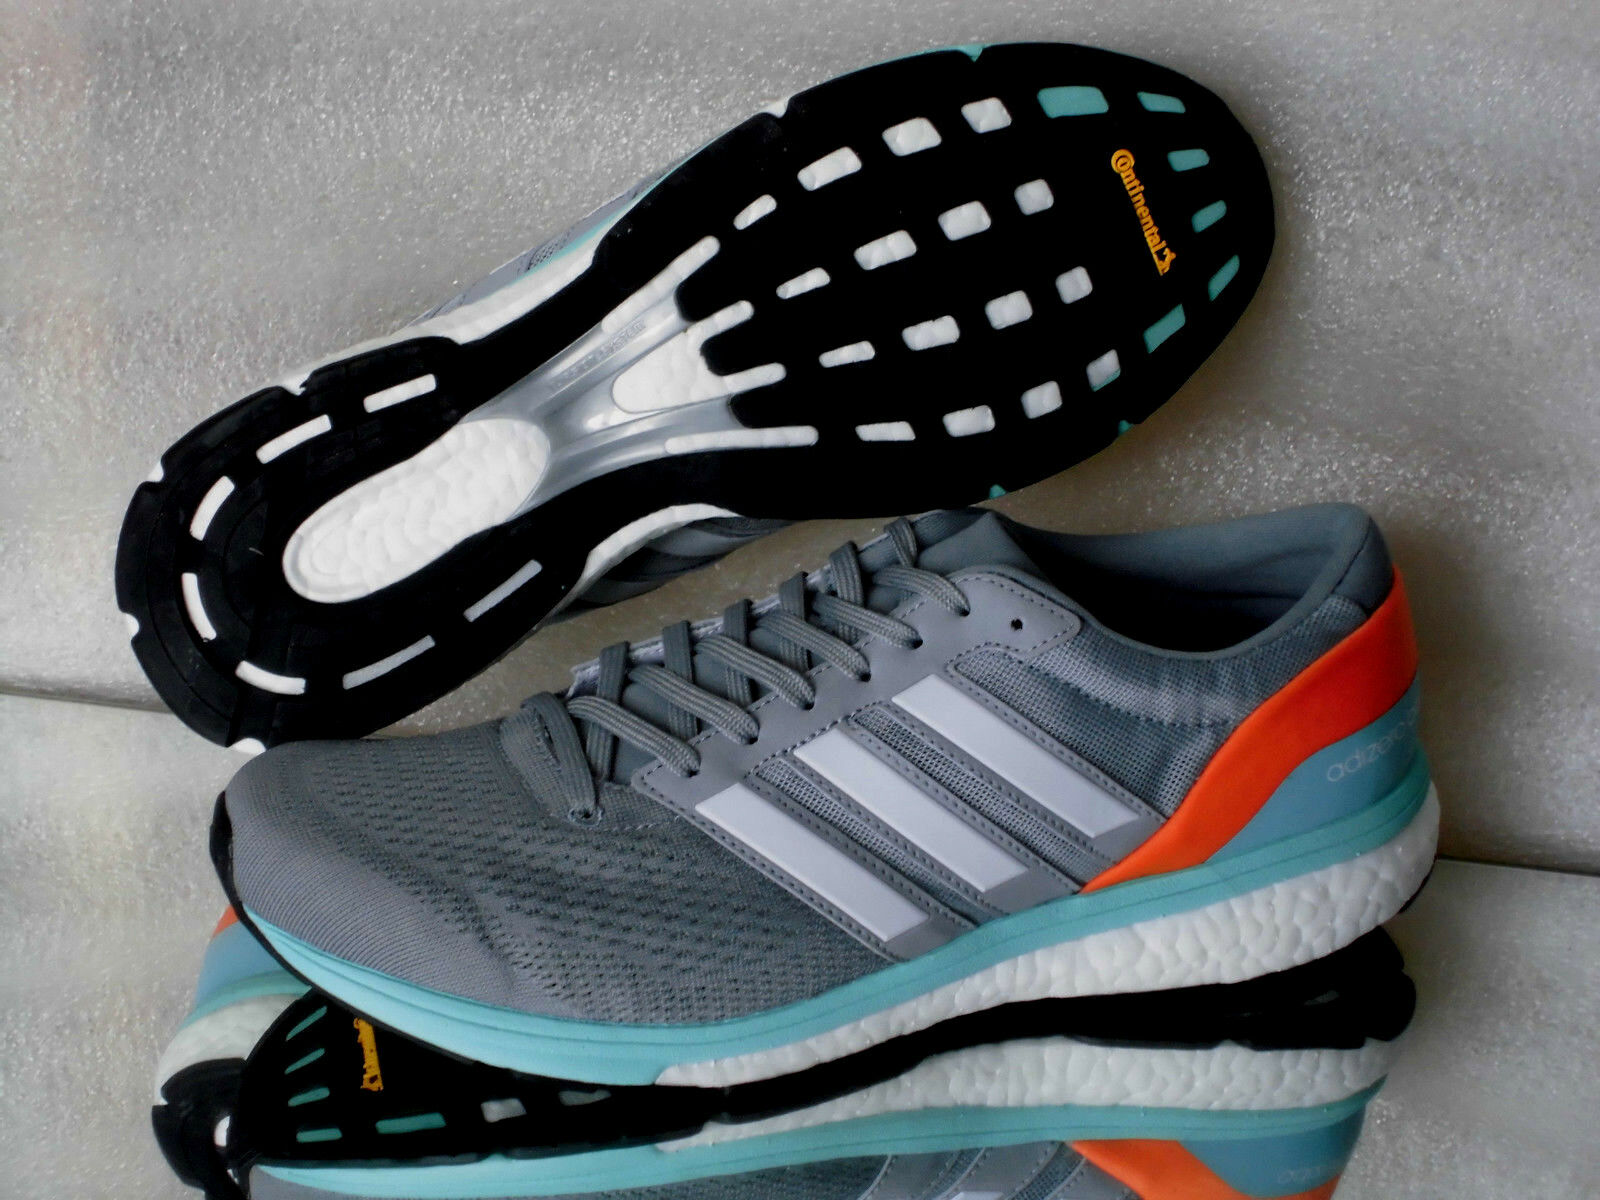 Adidas adizero boston 6w bb1729  running shoes sneakers in grey gr  42-45  come to choose your own sports style